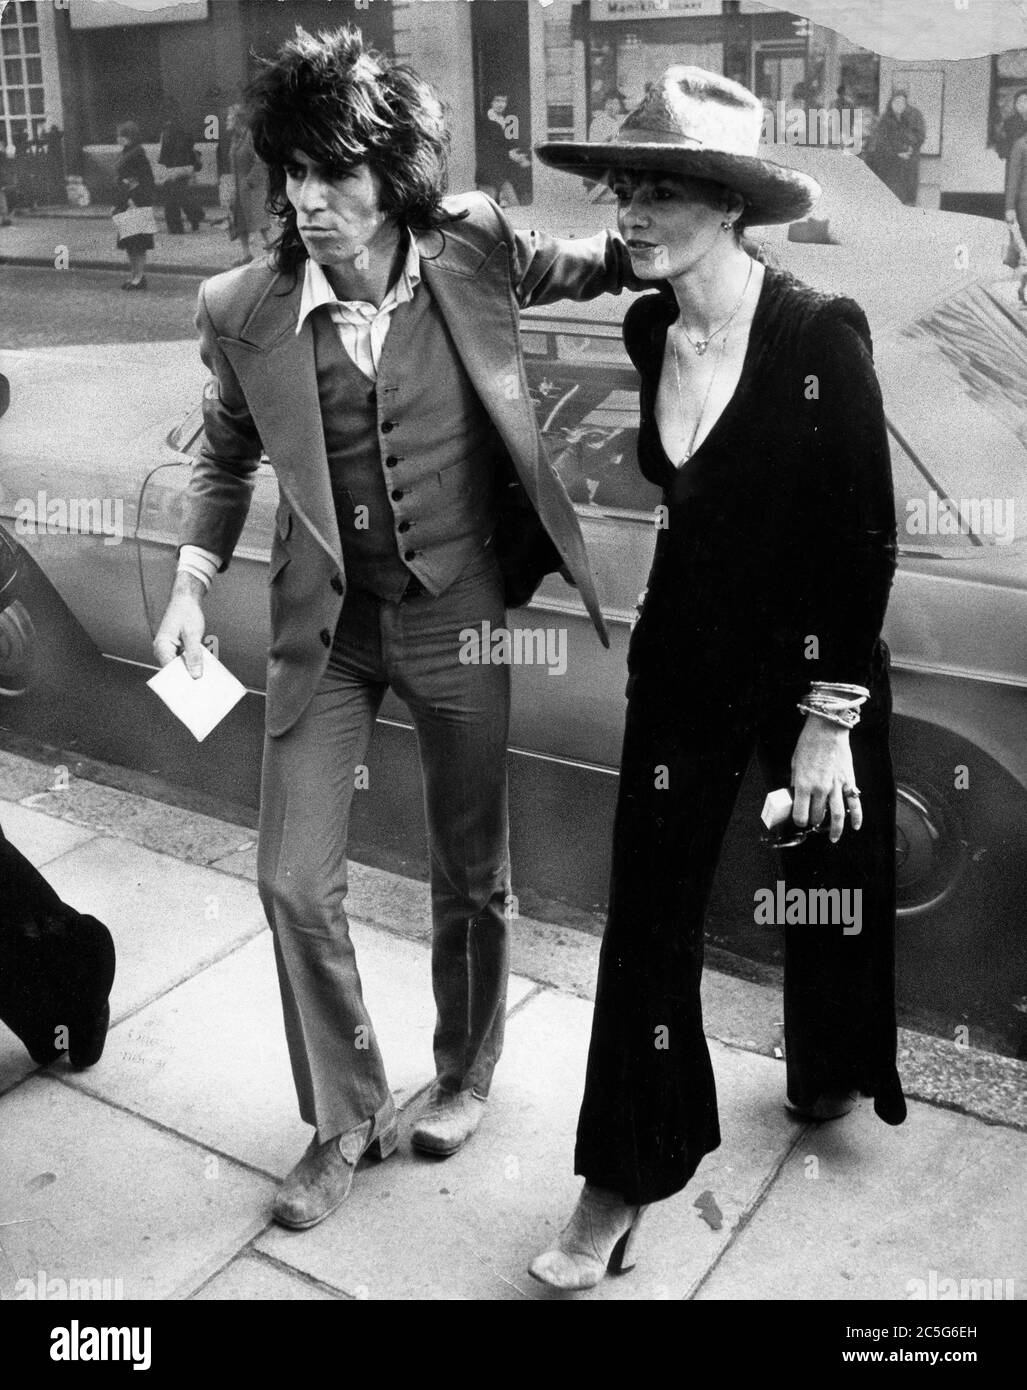 Oct. 24, 1973 - London, England, United Kingdom - KEITH RICHARDS, the guitarist of the famous British rock group The Rolling Stones, and his girlfriend ANITA PALLENBERG on their way to court after both had been fined for drug offenses. (Credit Image: © Keystone Press Agency/Keystone USA via ZUMAPRESS.com) Stock Photo